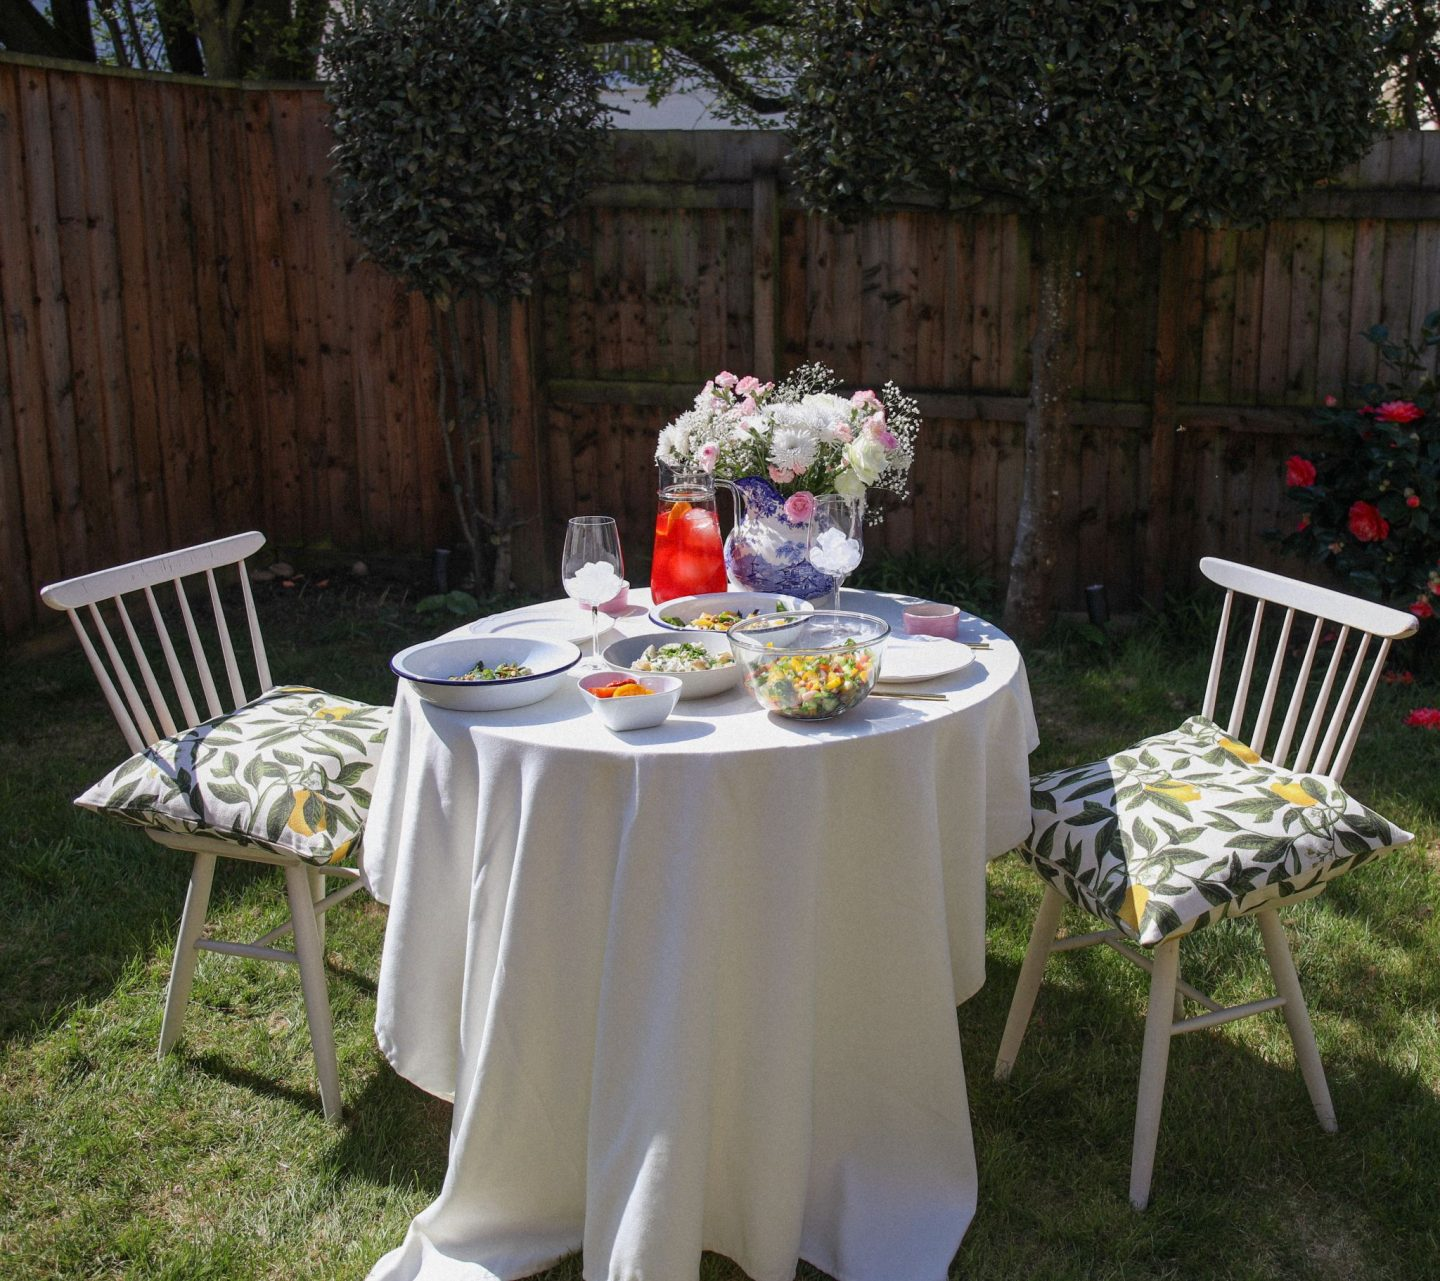 Spring lunch salad recipes in the garden, Katie Heath, KALANCHOE